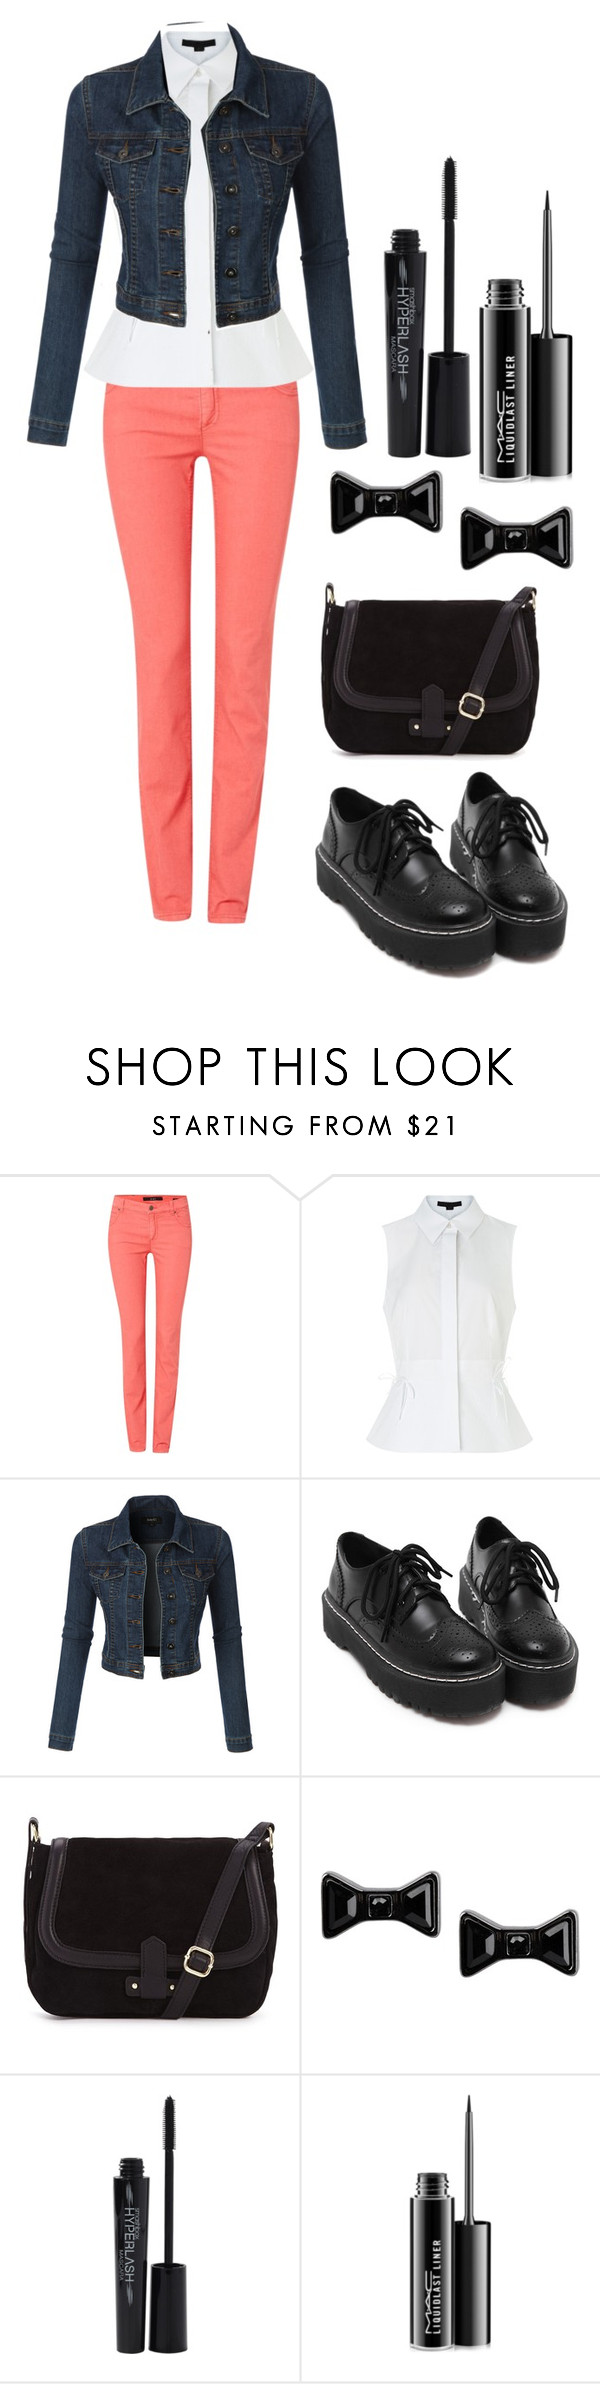 """""""Untitled #392"""" by fairytale-reality ❤ liked on Polyvore featuring Oui, Alexander Wang, LE3NO, Marc by Marc Jacobs, Smashbox, MAC Cosmetics, women's clothing, women's fashion, women and female"""